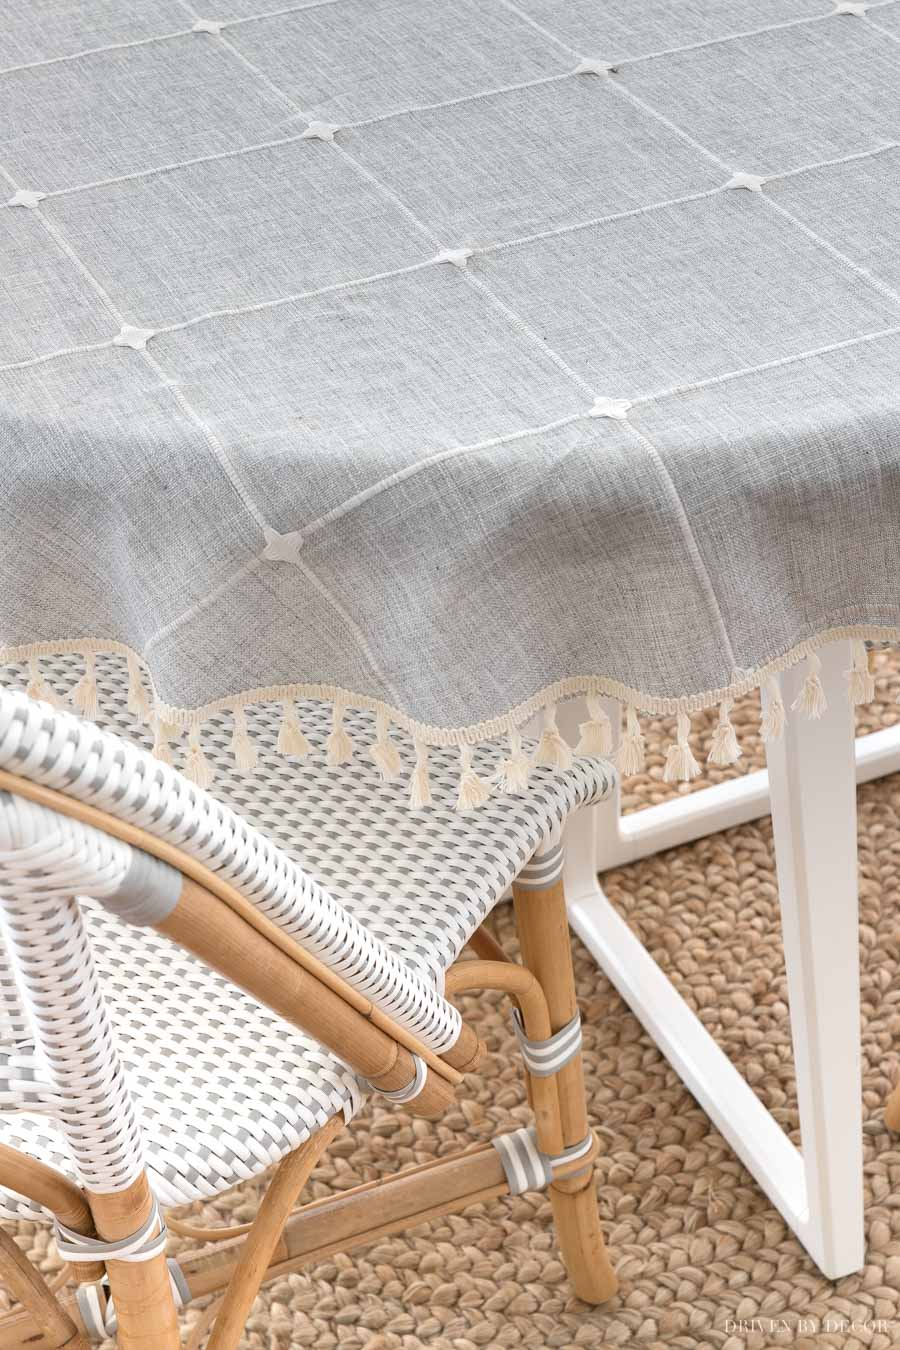 A super cute tasseled tablecloth on this breakfast nook table!